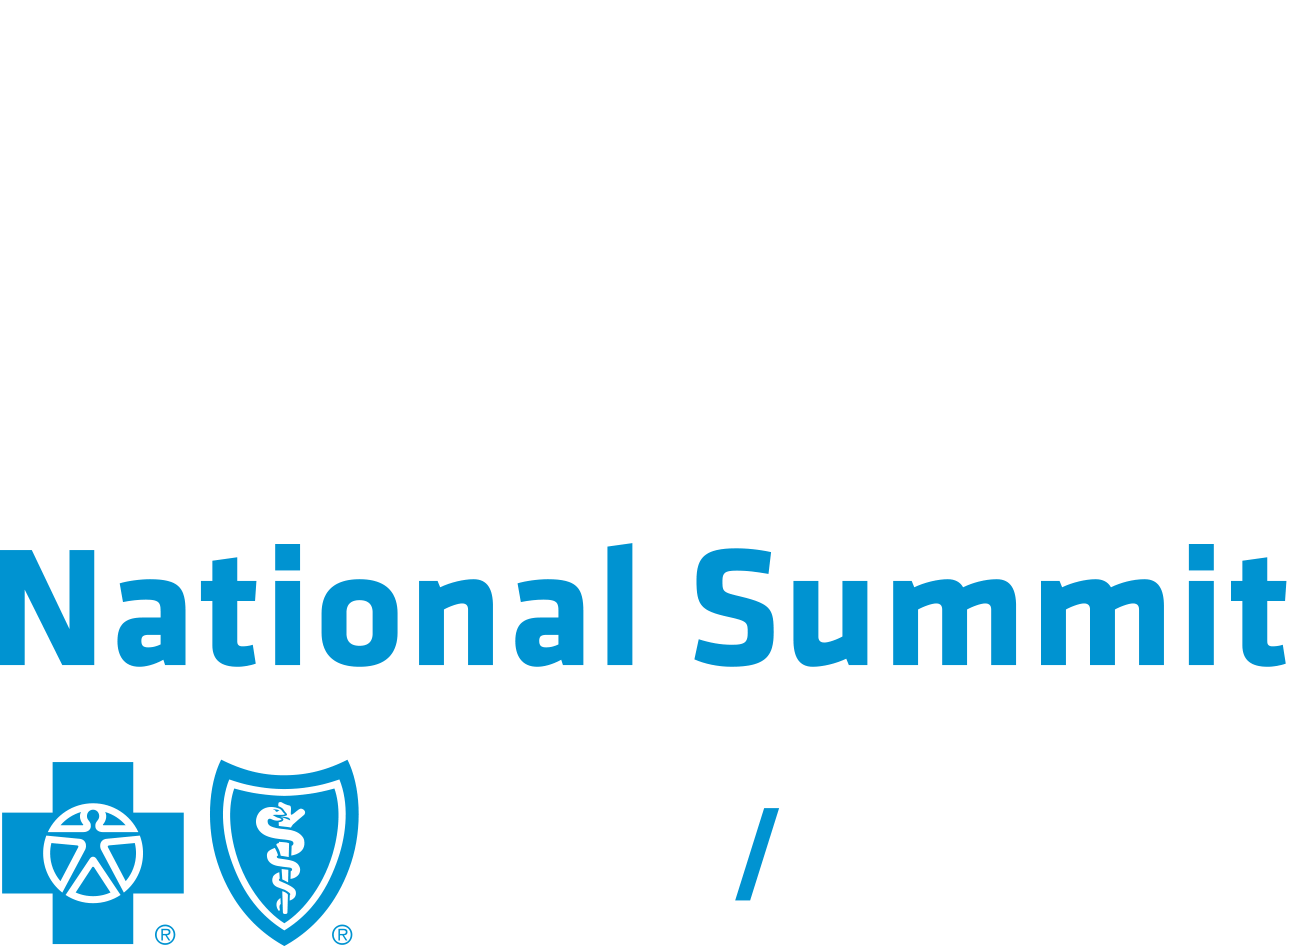 Blue Cross Blue Shield National Summit 2010 - Branding, Graphic Design, Logo